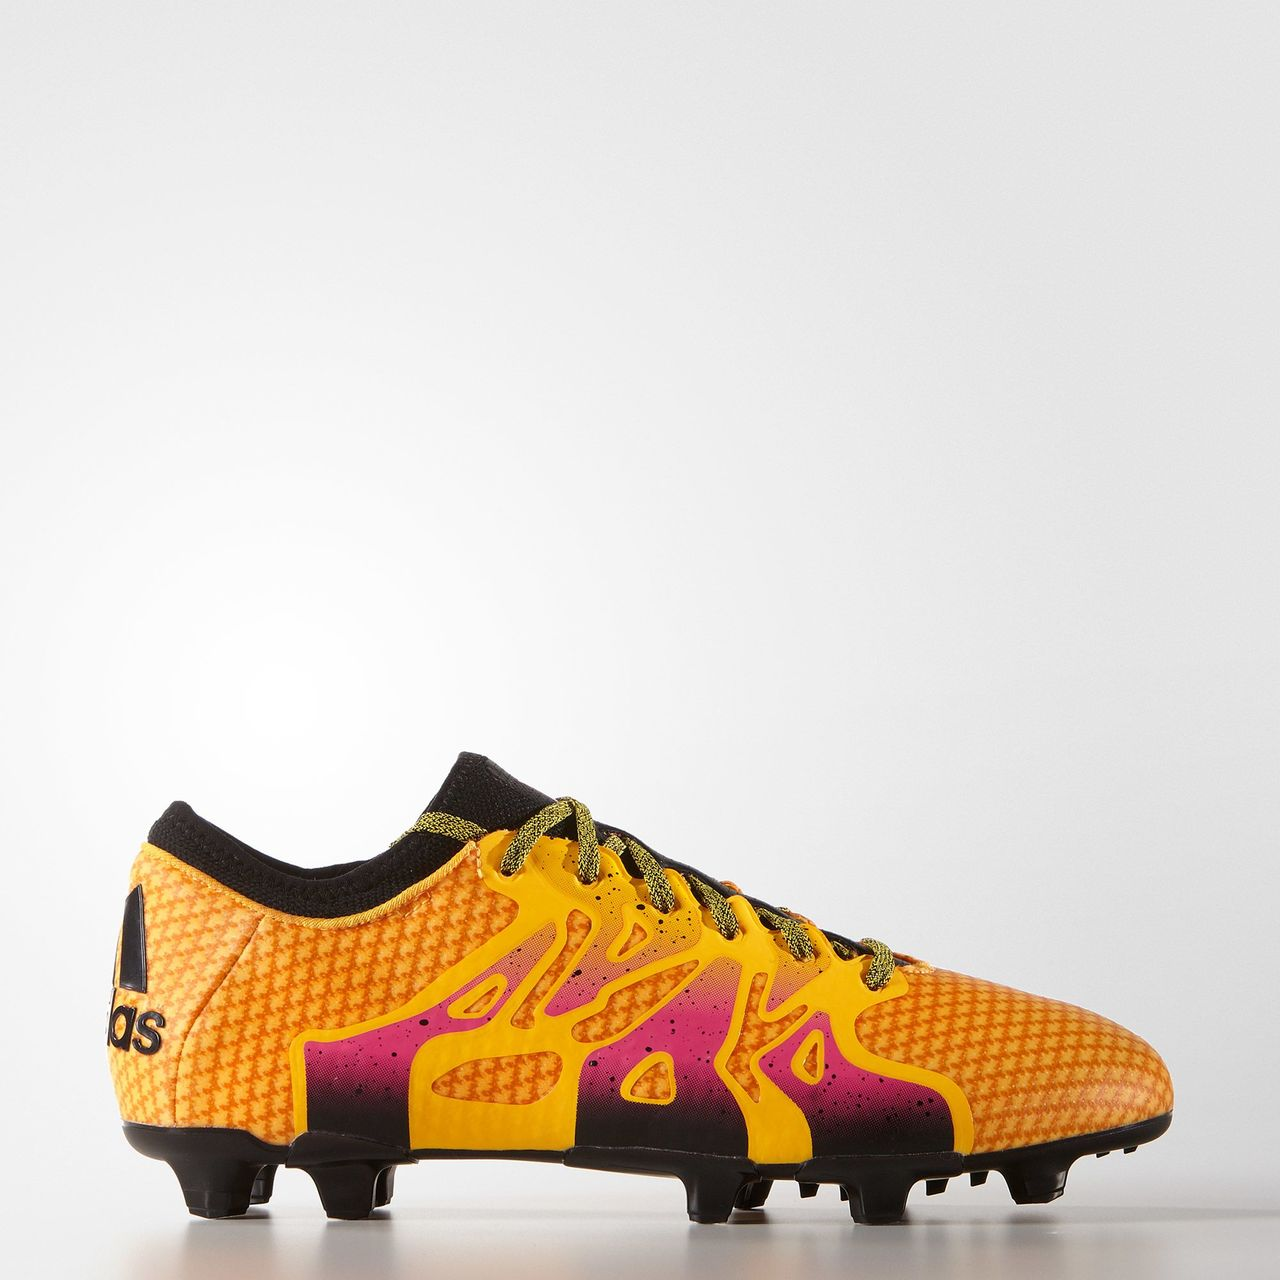 9243f2473a2b Adidas X15.1 Primeknit Firm Artificial Ground Boots - Solar Gold ...